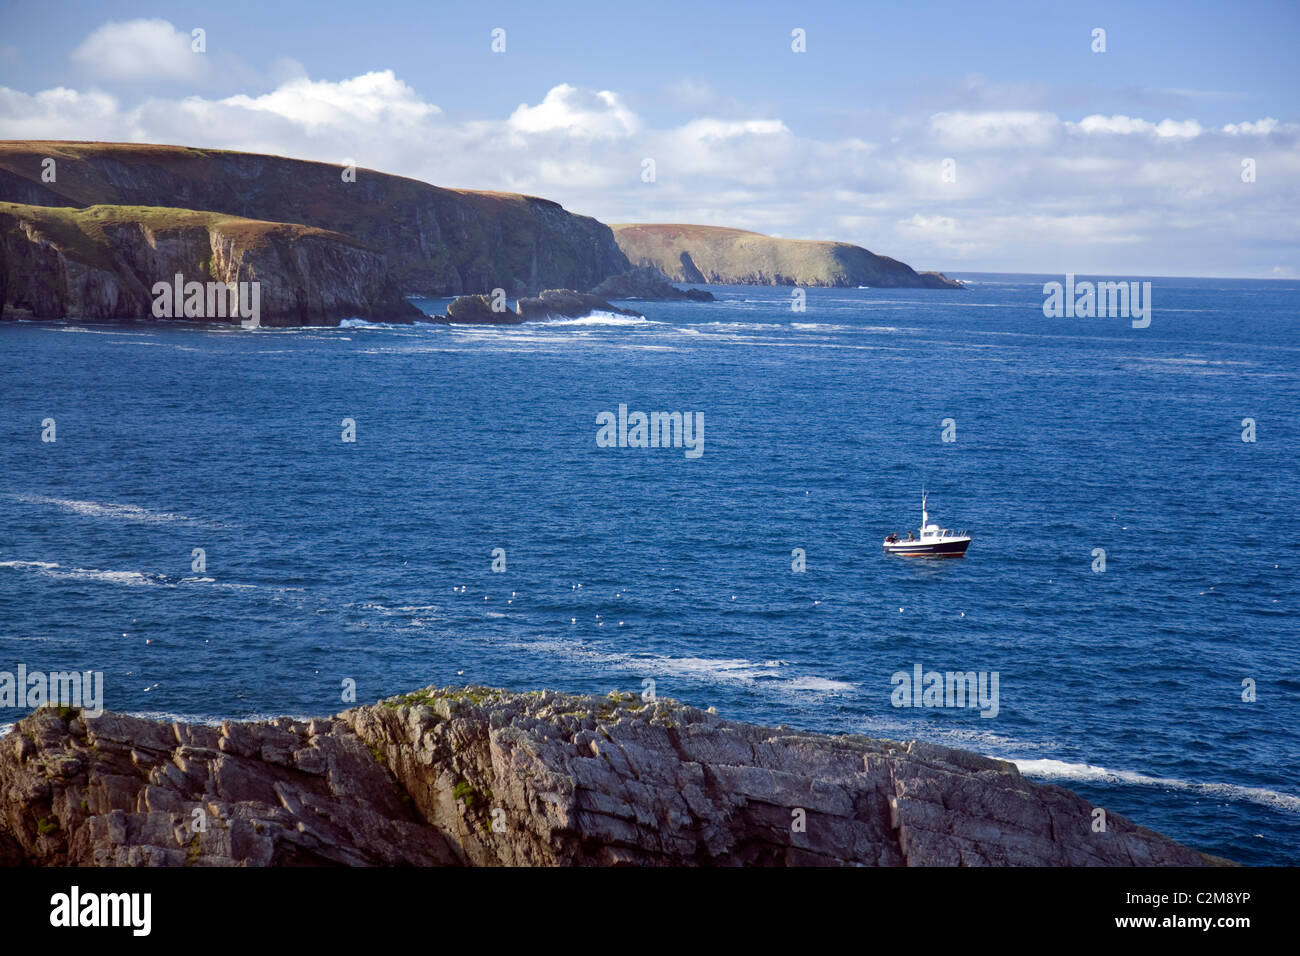 Sea angling boat near Erris Head, County Mayo, Ireland. - Stock Image